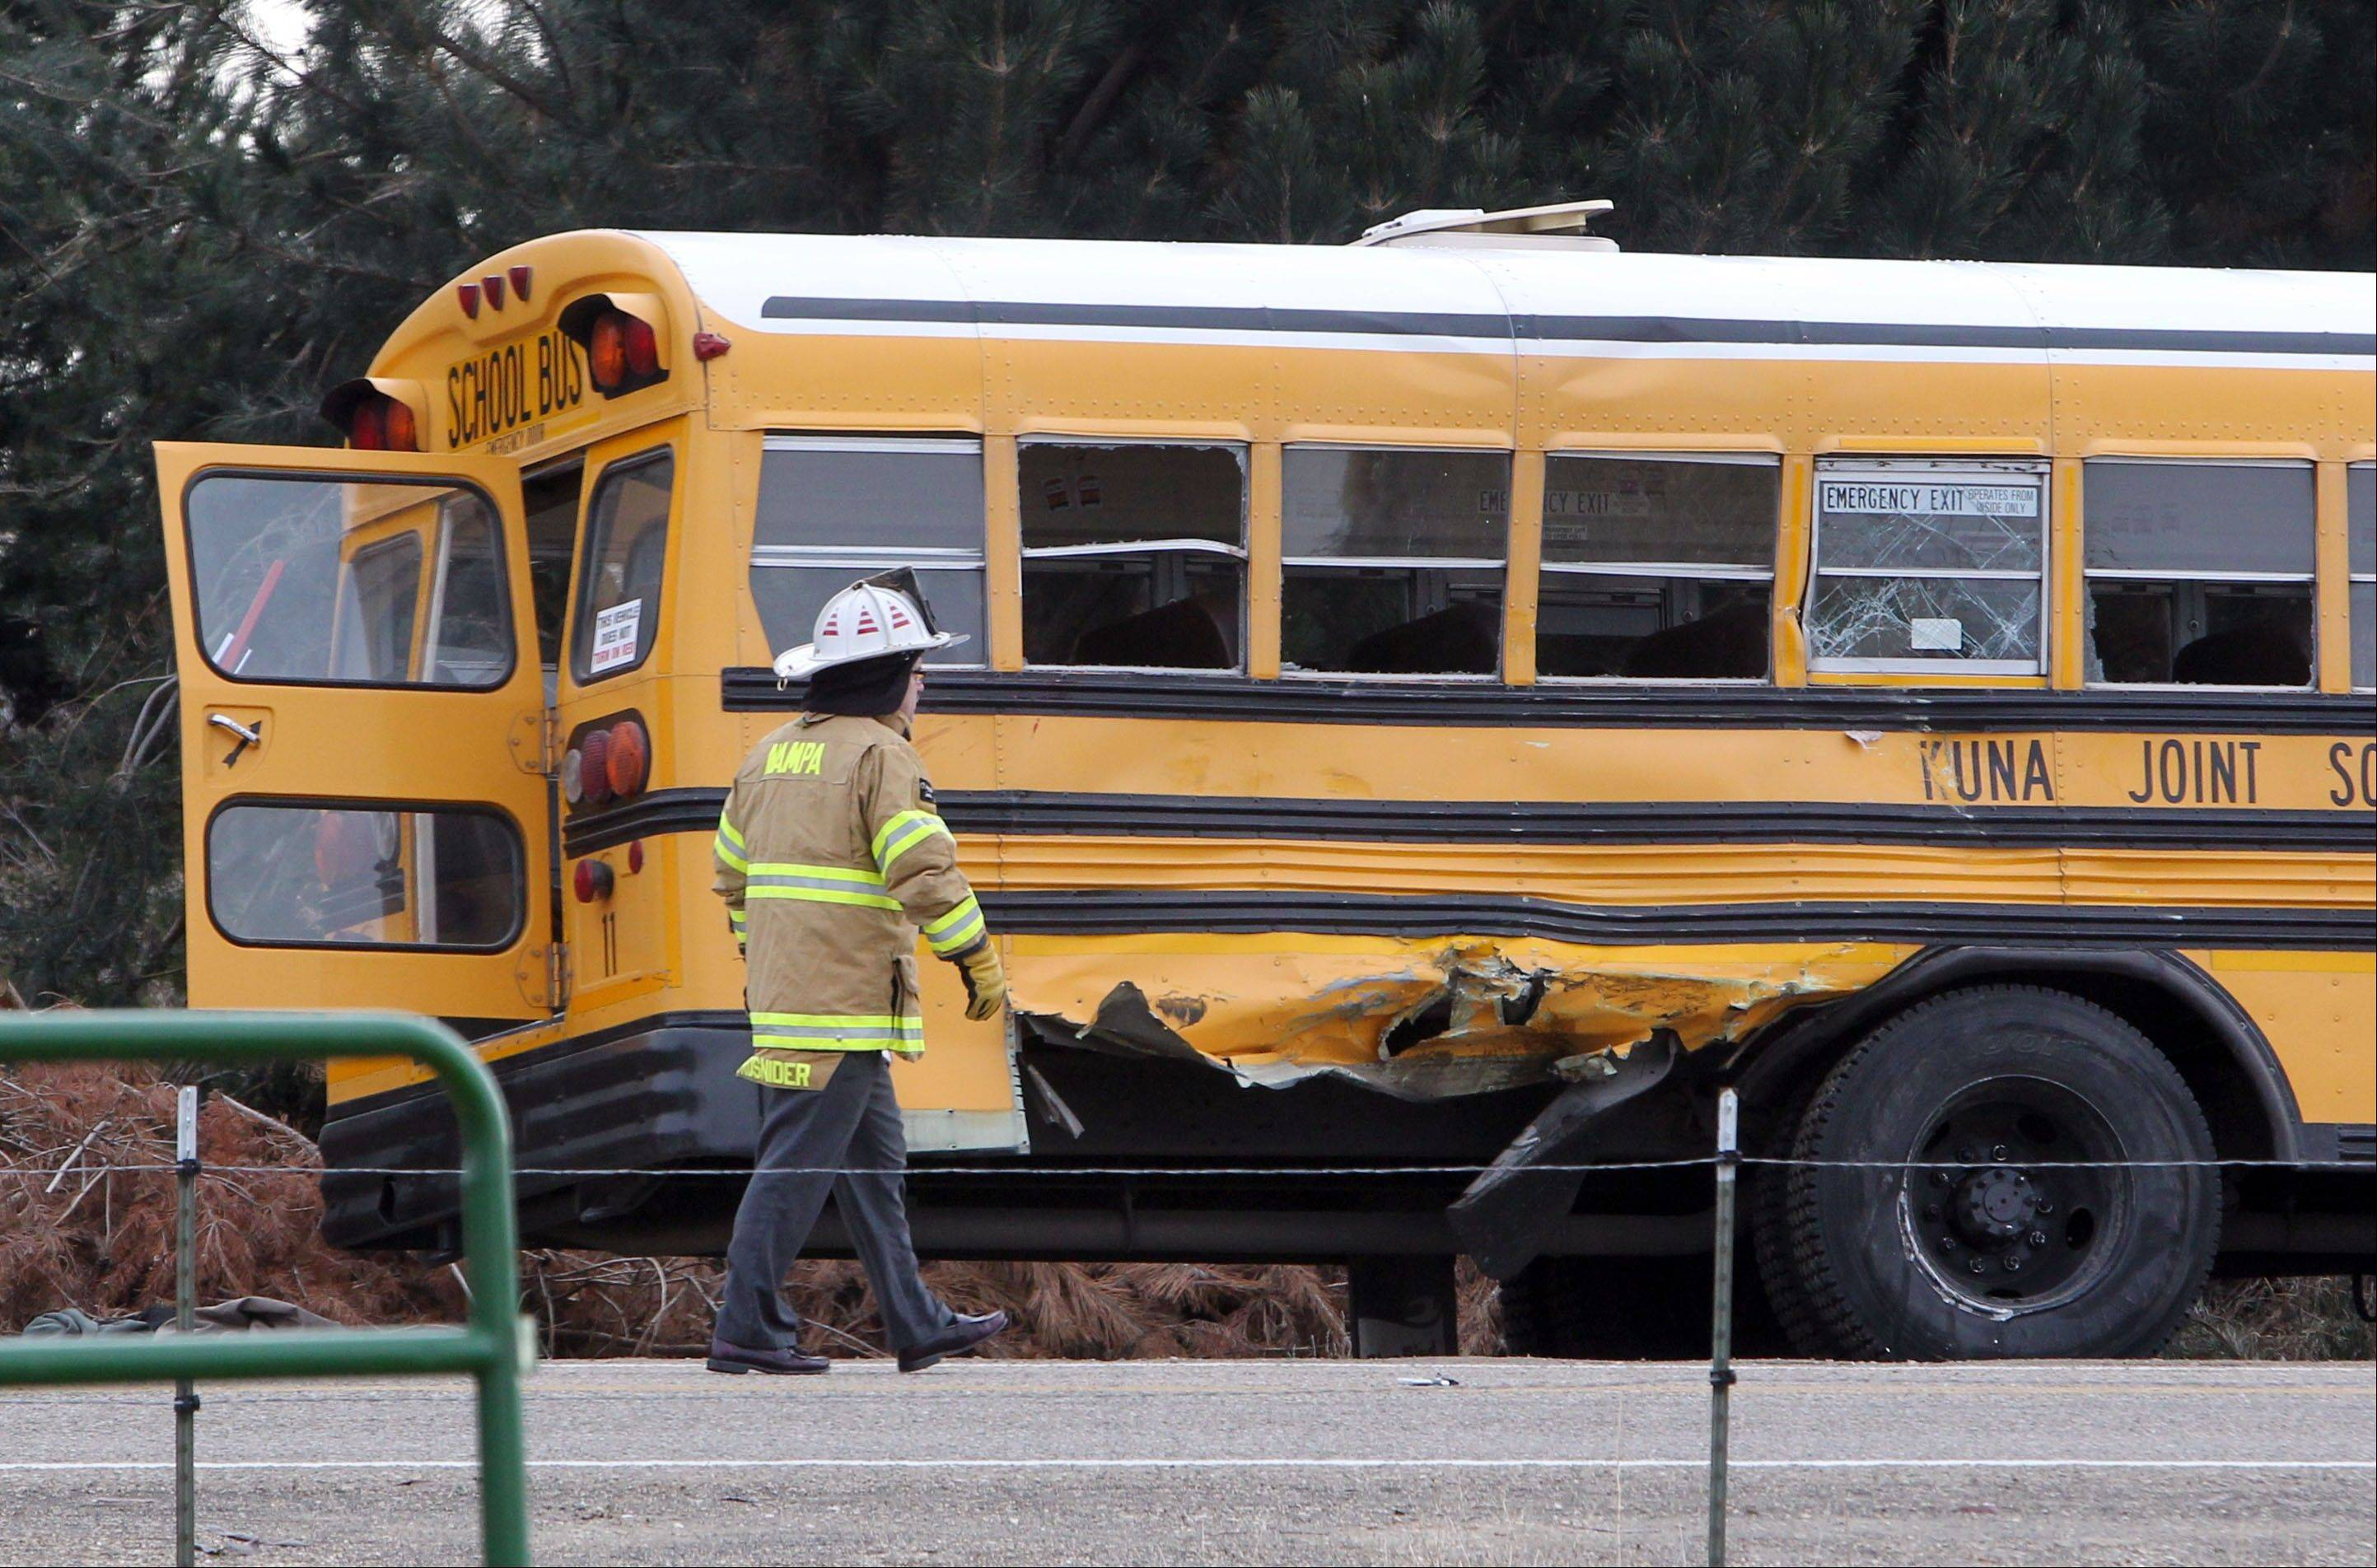 A firefighter walks past the damaged Kuna School District bus at the scene of a fatal crash on Thursday, Dec. 5, 2013 in Kuna, Idaho. Authorities say one child has died and five people were injured, including four children, when a dump truck collided with the school bus carrying elementary school students in Kuna, a town about 30 minutes from Boise.